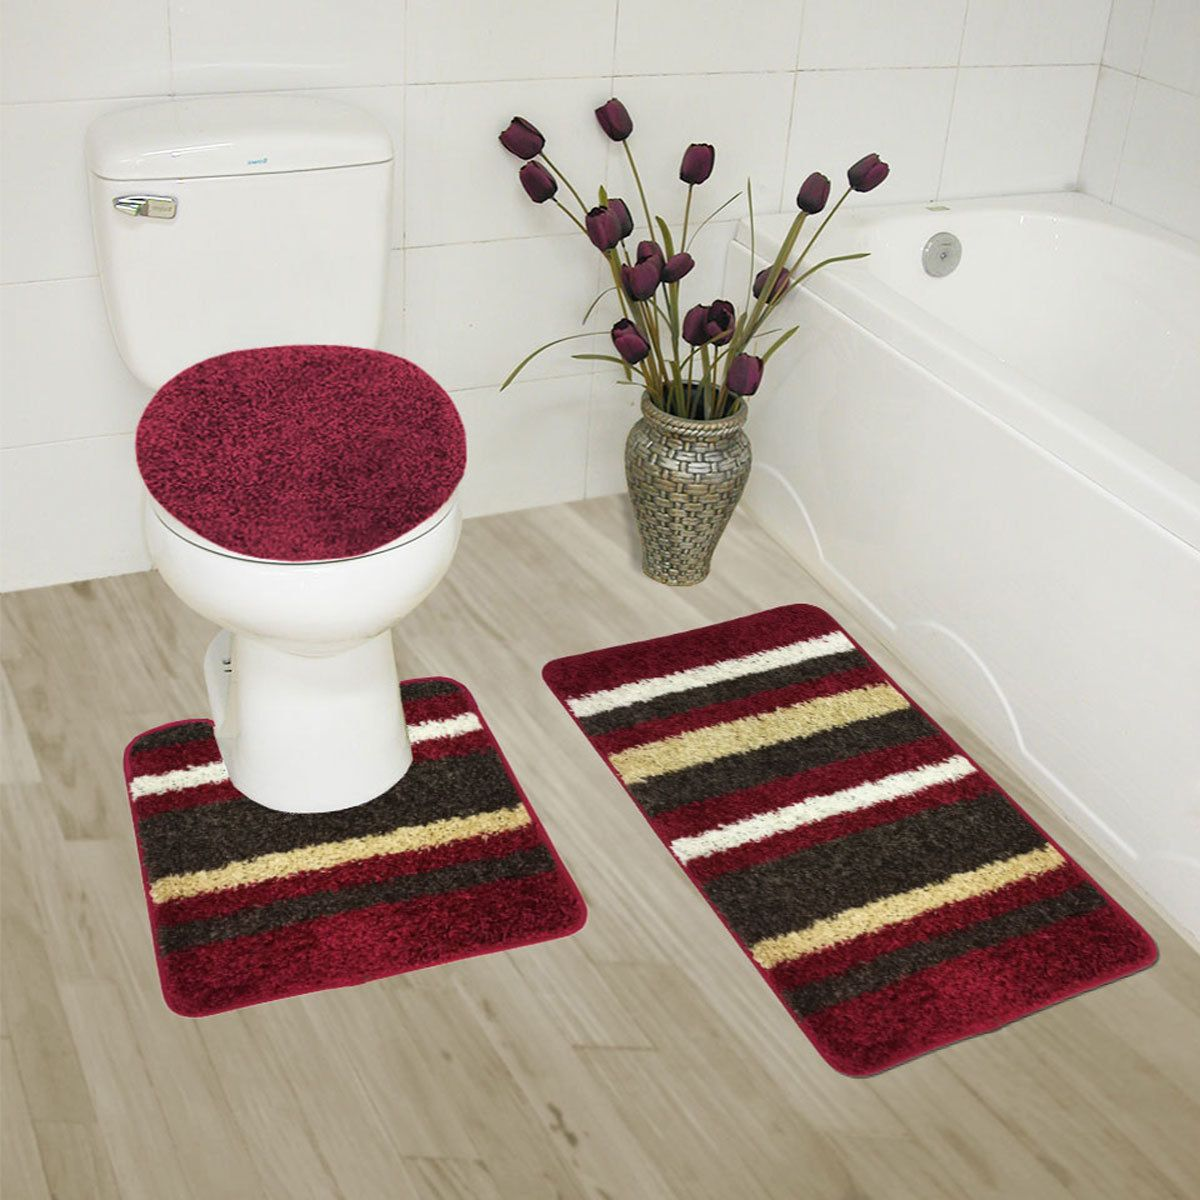 Abby 3 Piece Bathroom Rug Set Bath Contour Lid Cover High Pile Polypropylene SetsPolypropylene RugsBath